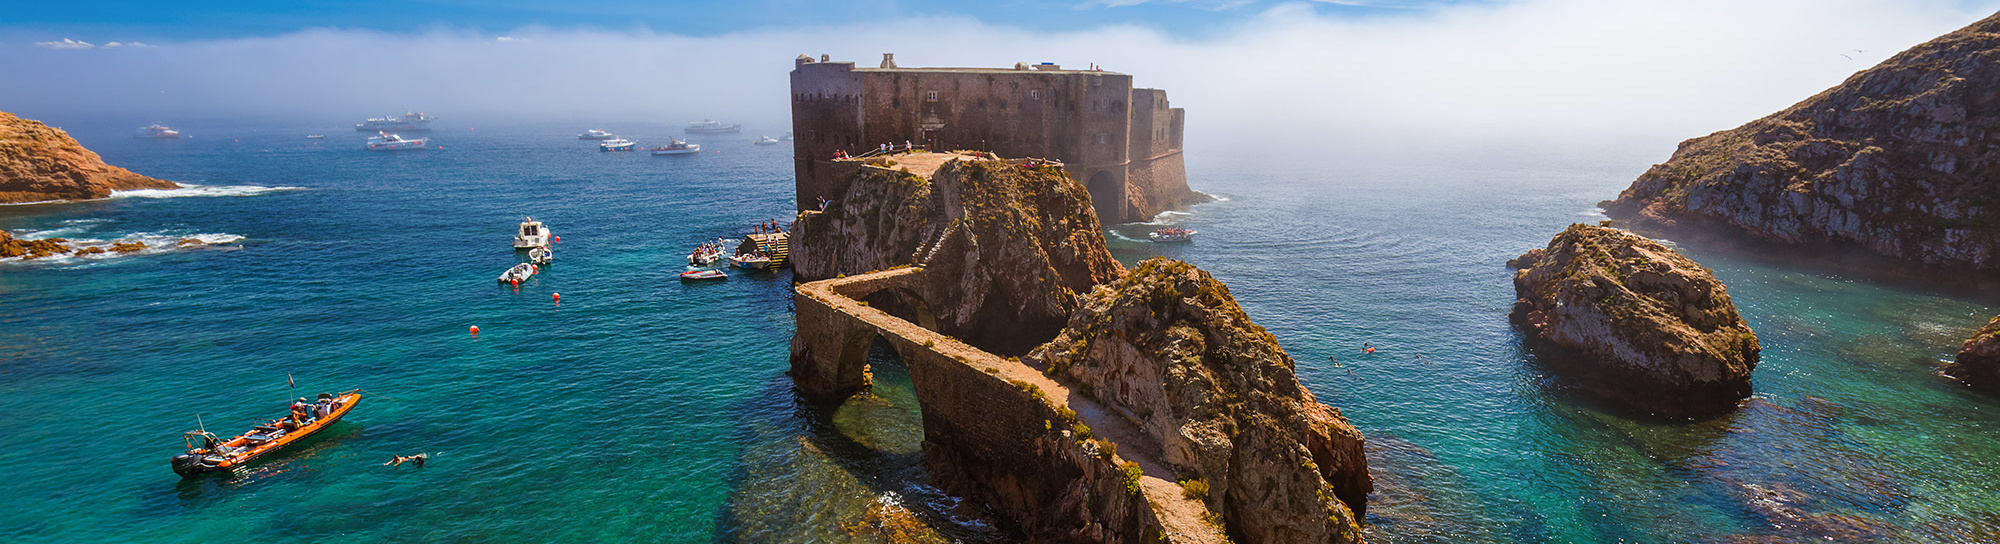 Portugal Berlingas Islands